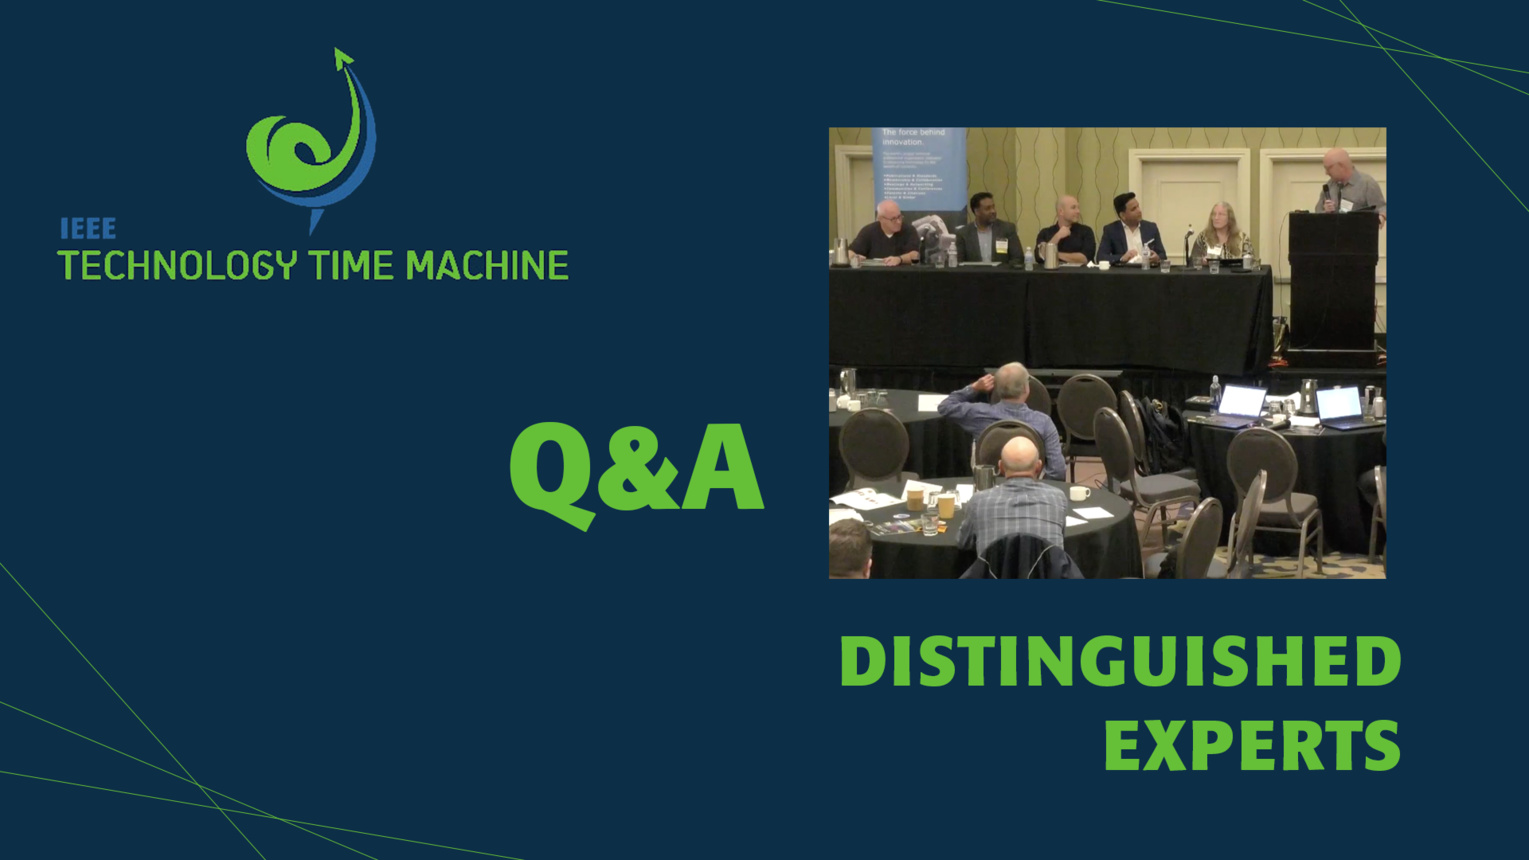 Q&A: Distinguished Experts Panel - TTM 2018